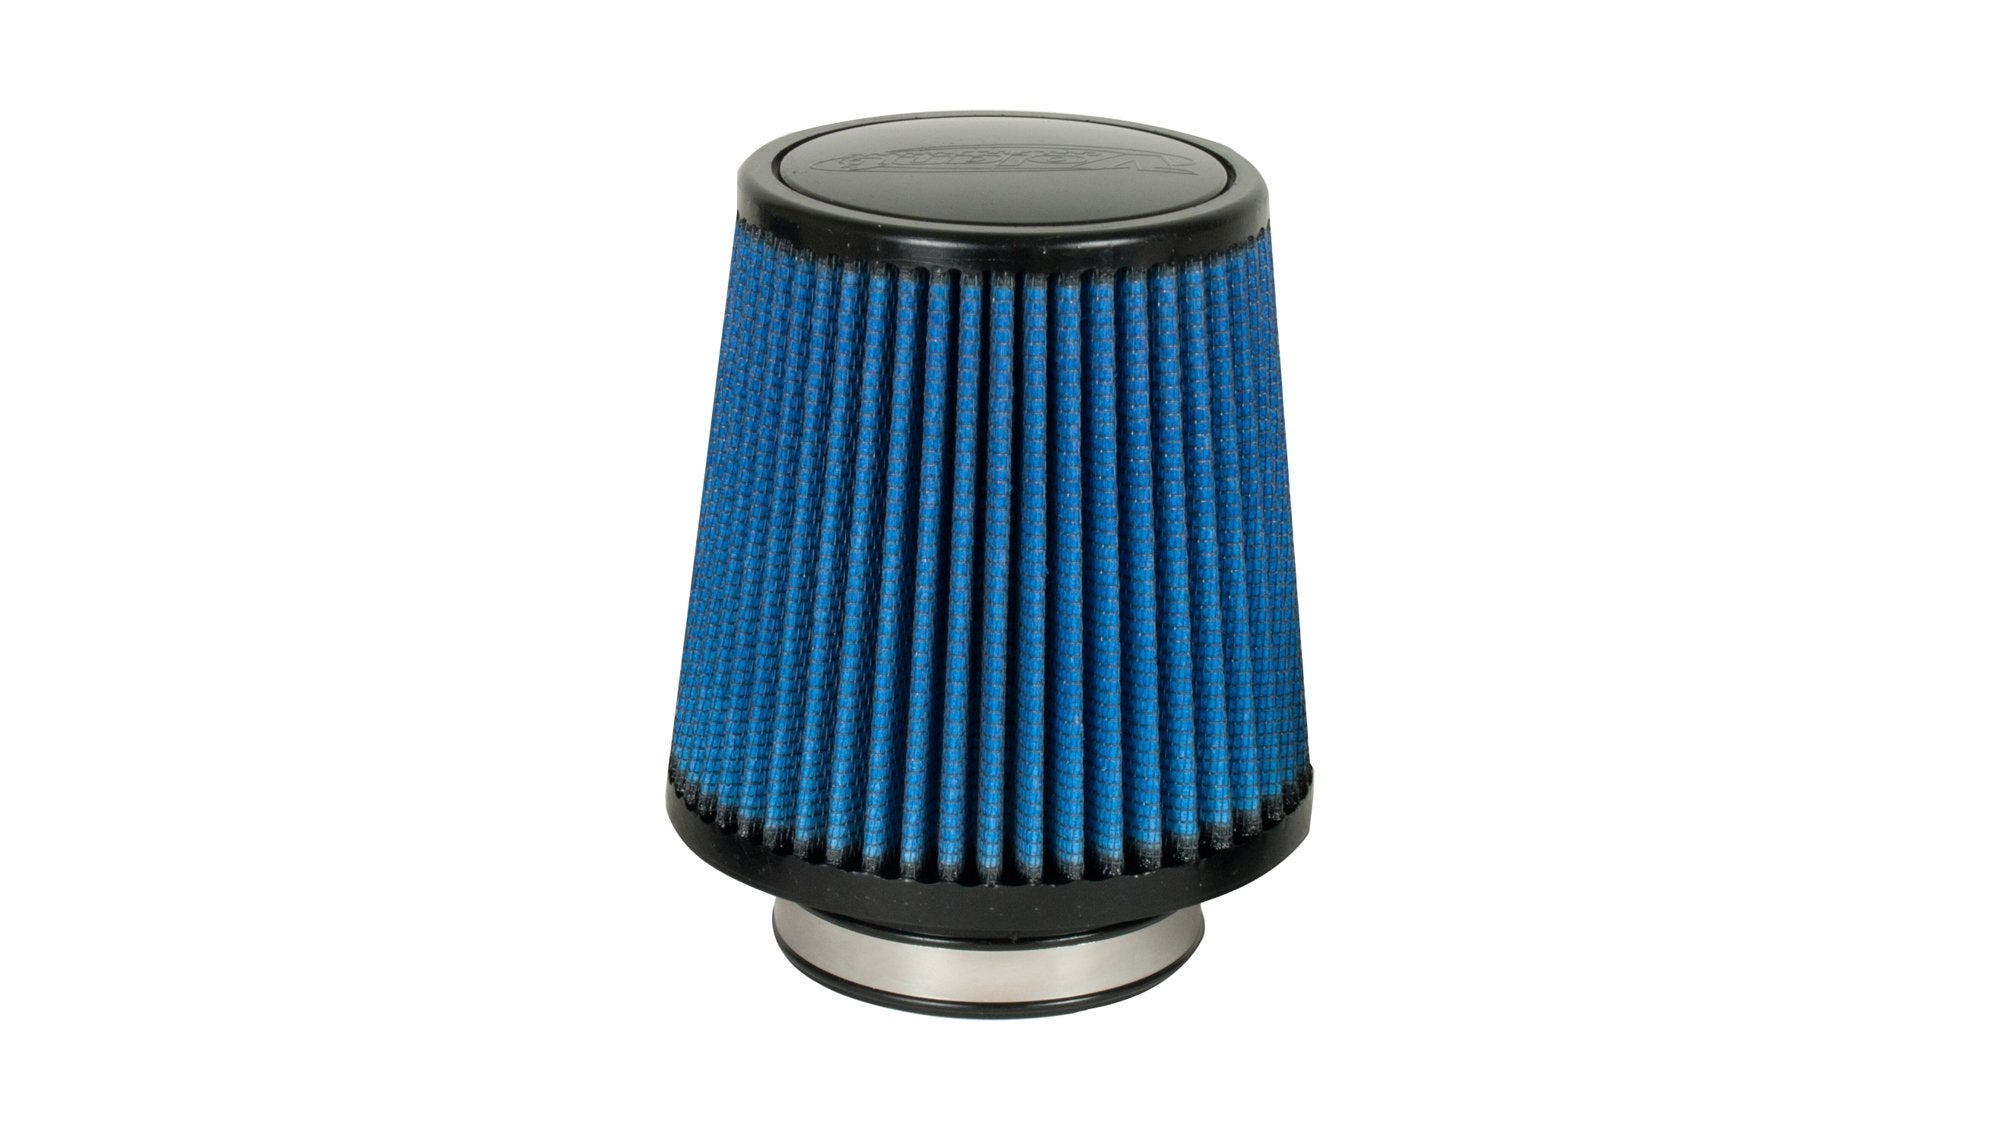 MaxFlow Oiled Air Filter (5113) Replacement Air Filter